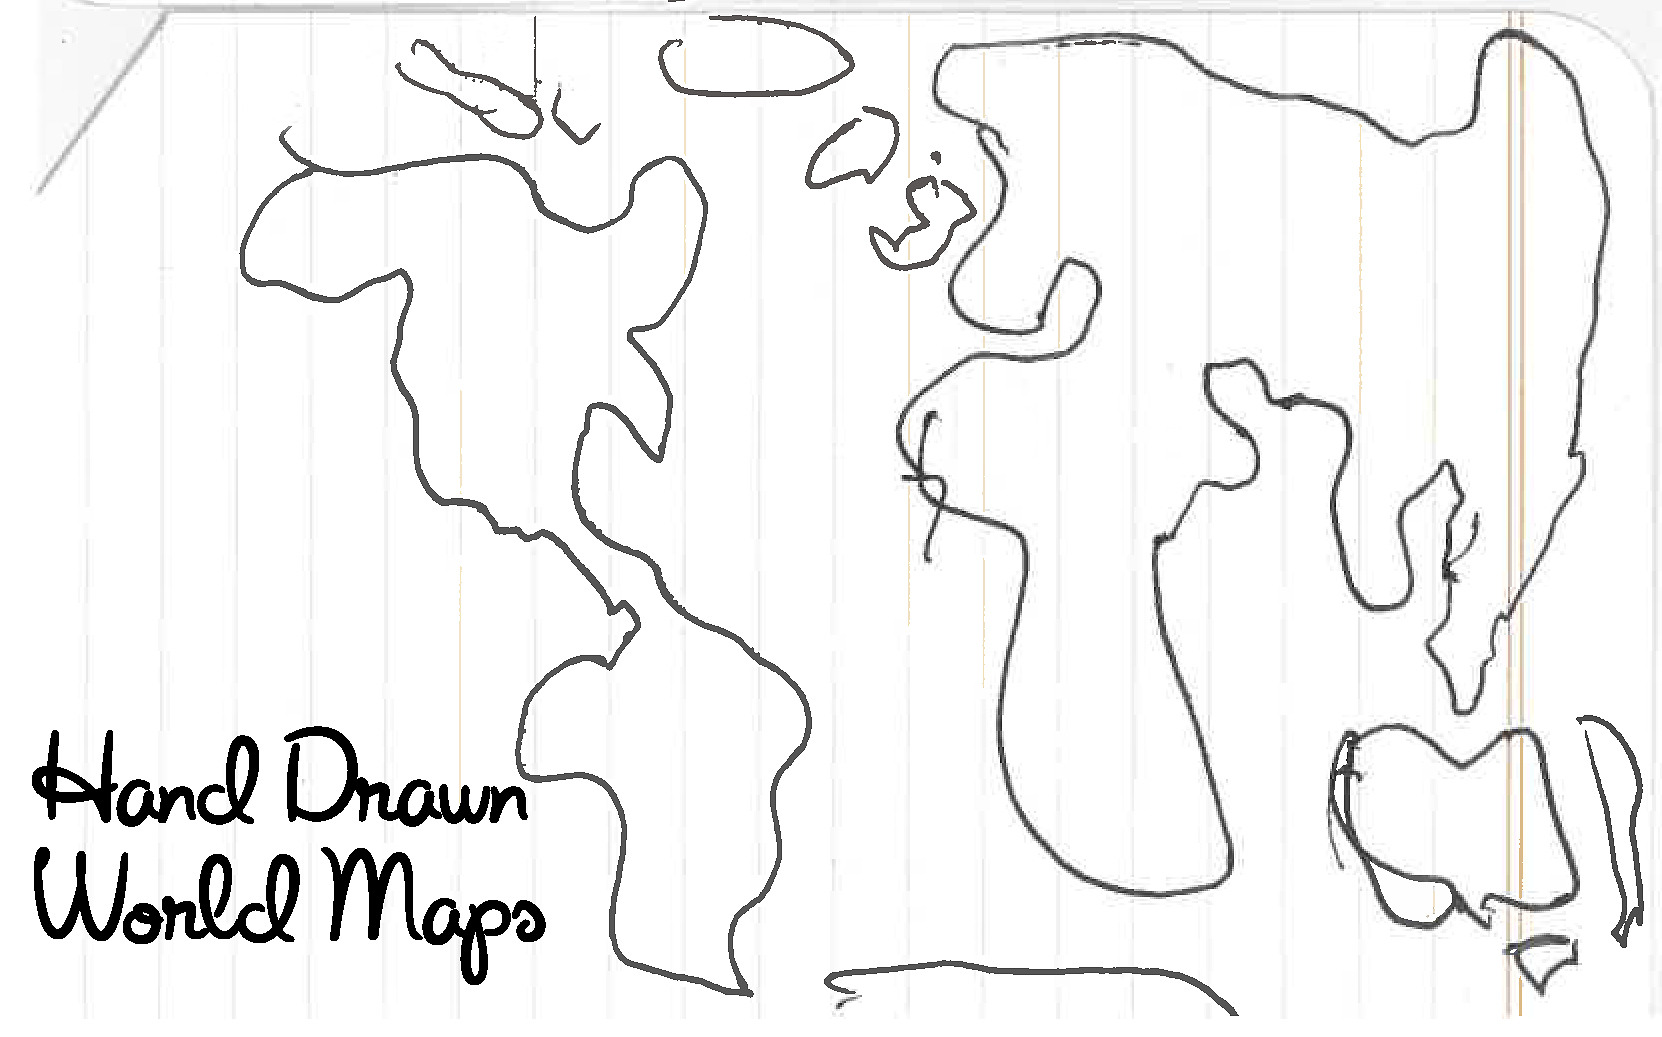 Hand Drawn World Maps